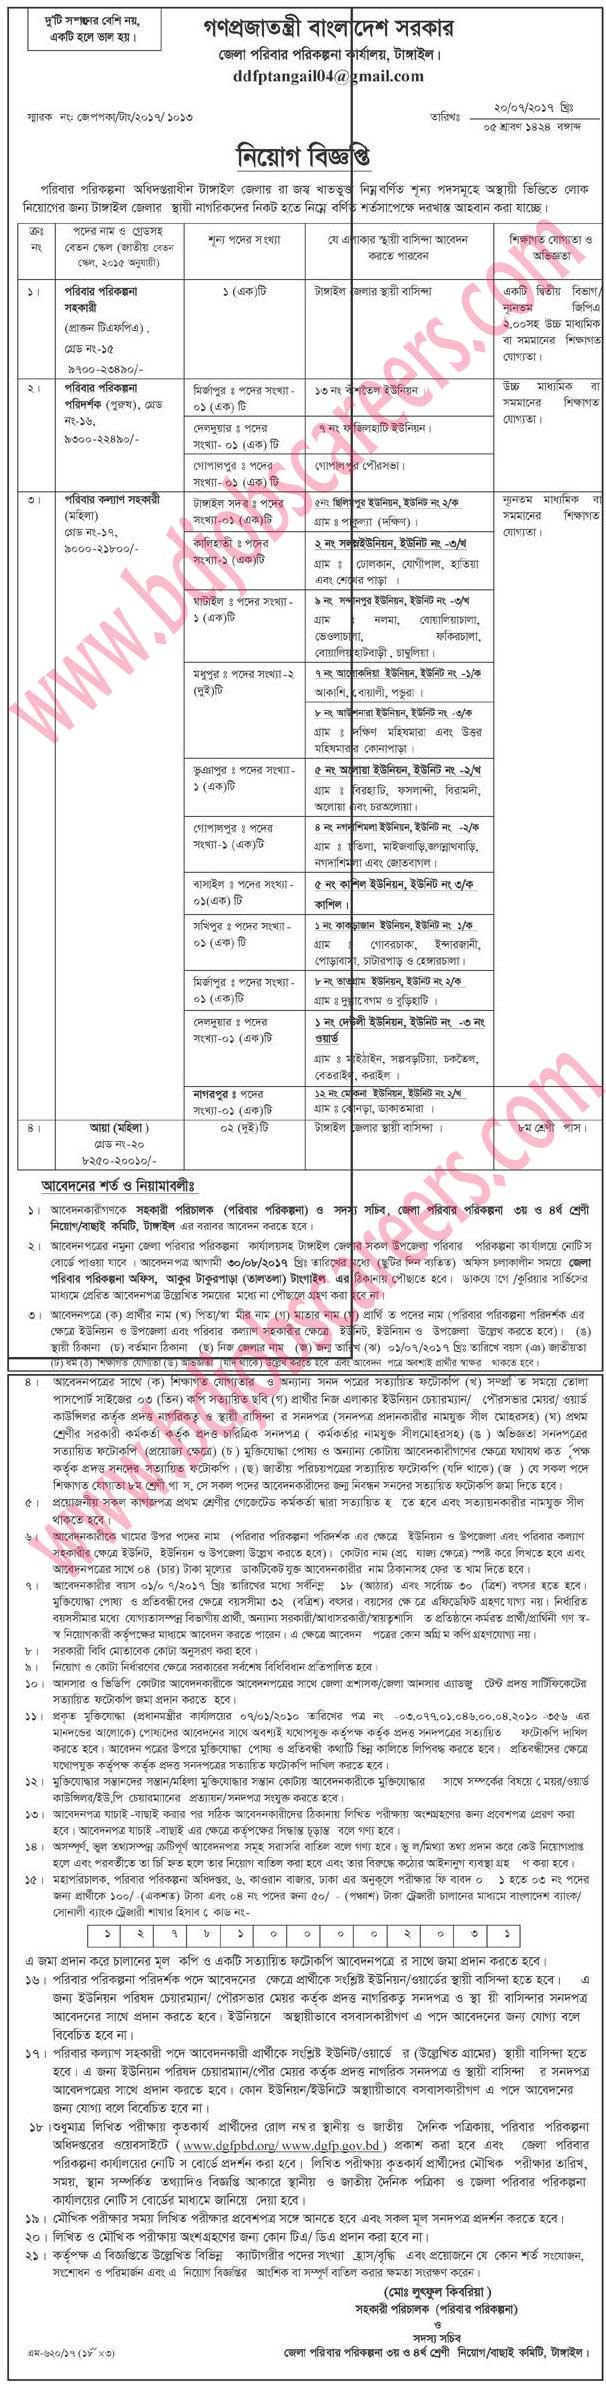 Tangail District Family Planning Office Job Circular 2017